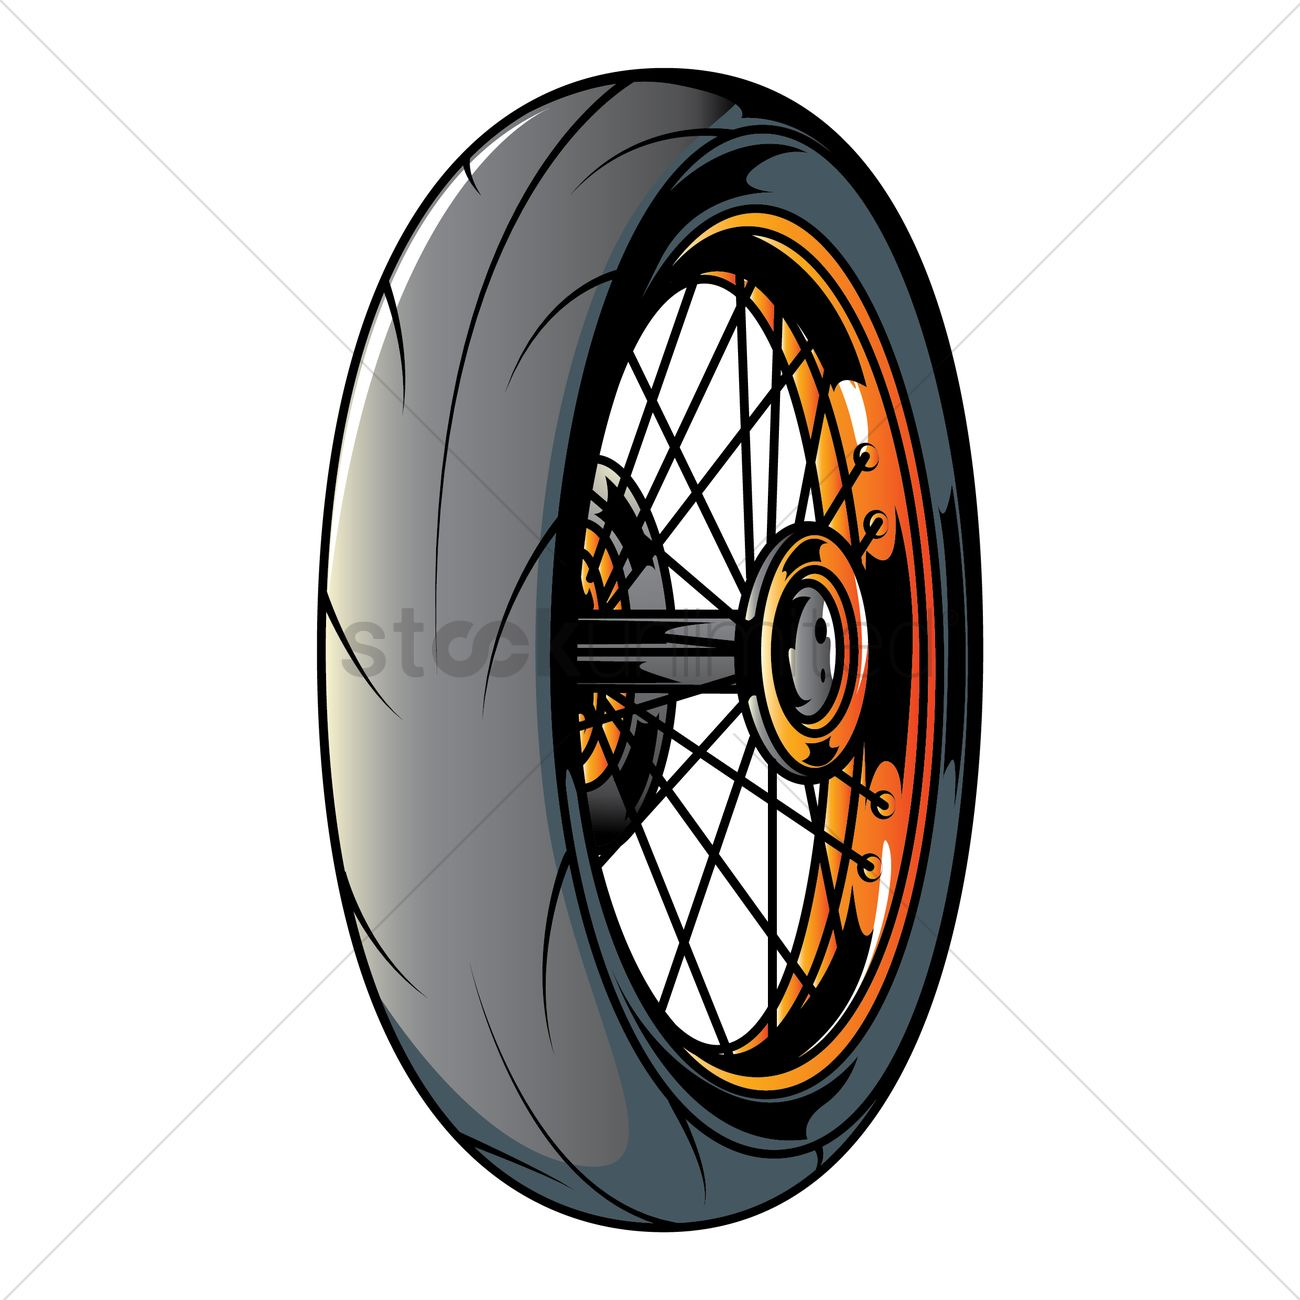 Racing tire Vector Image - 1463917 | StockUnlimited for Racing Tire Vector  59nar